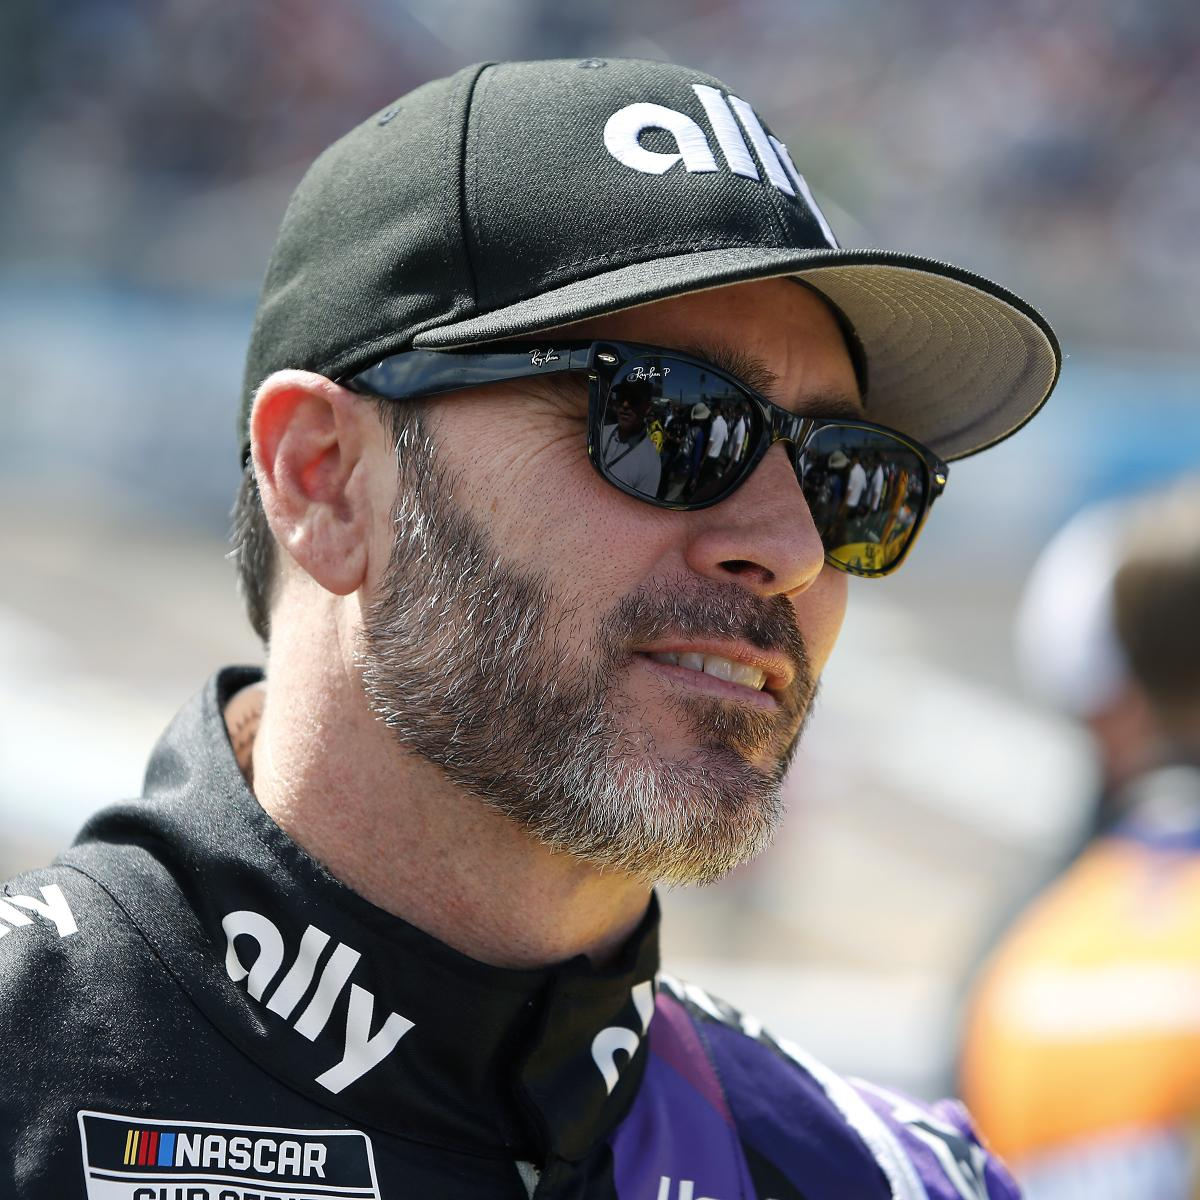 Jimmie Johnson to Move from NASCAR to IndyCar; Would Team with Scott Dixon